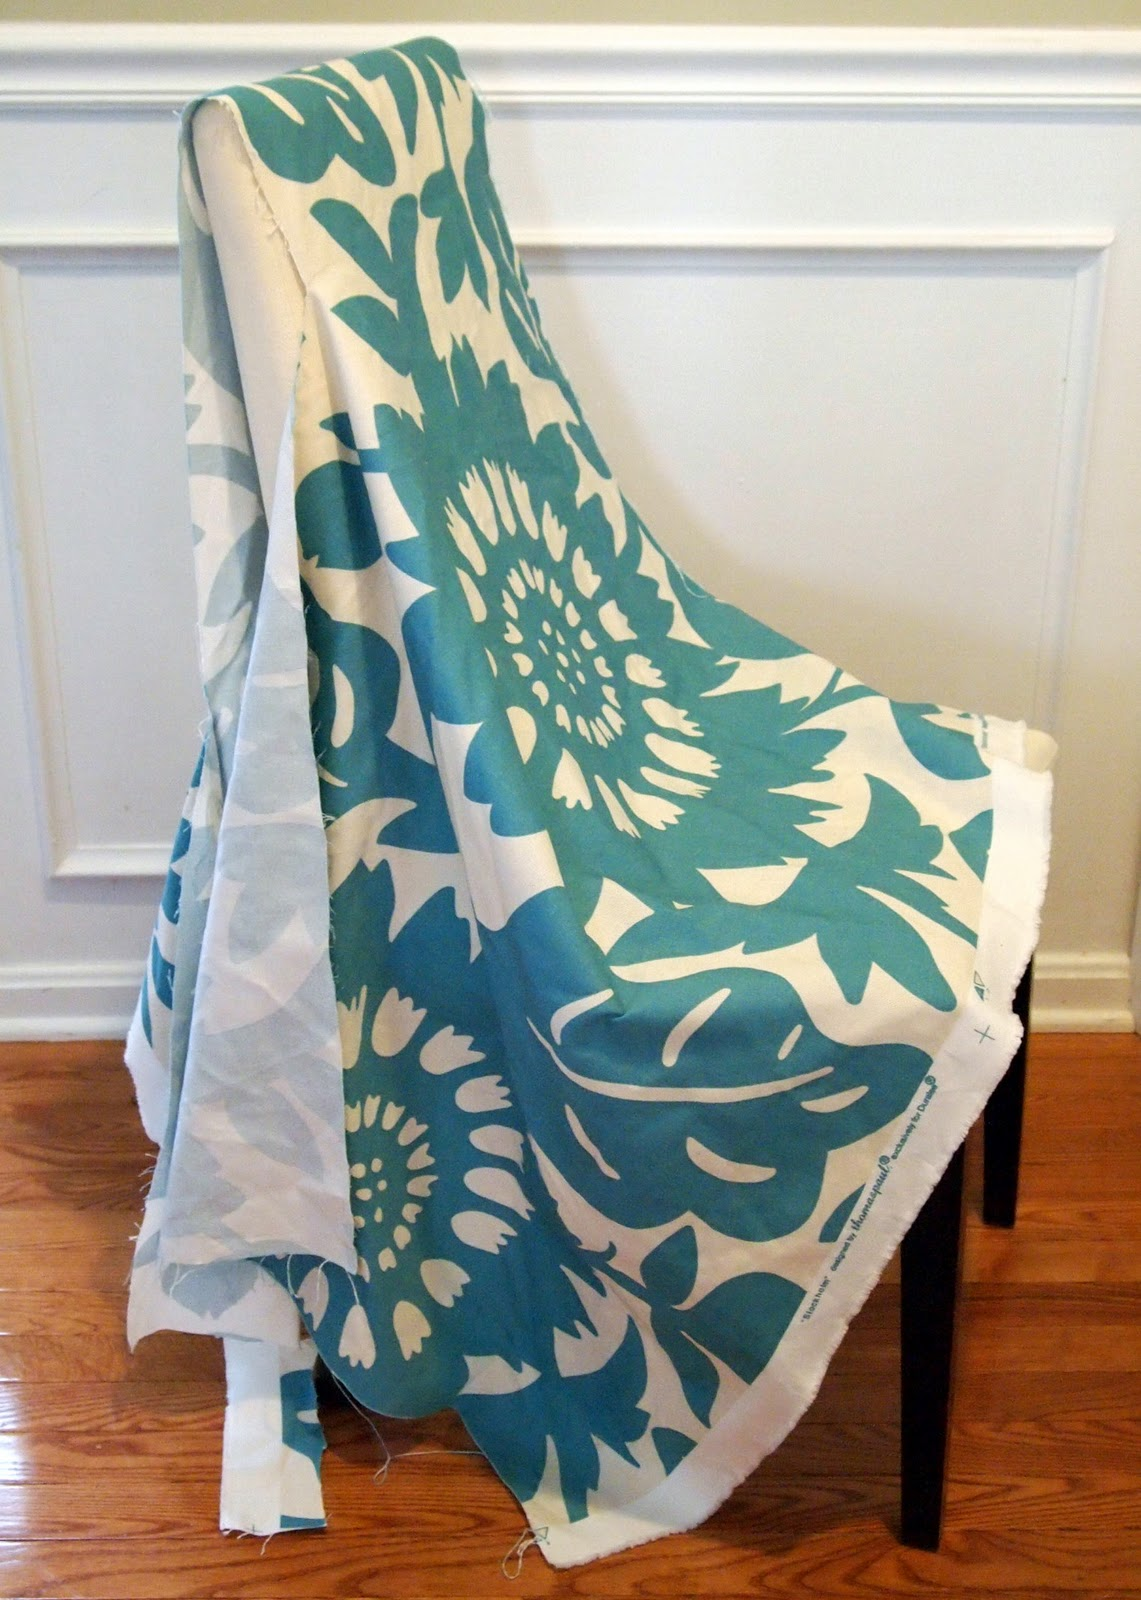 Material To Cover Dining Chairs Maroon Accent Loveyourroom My Morning Slip Chair Project Using